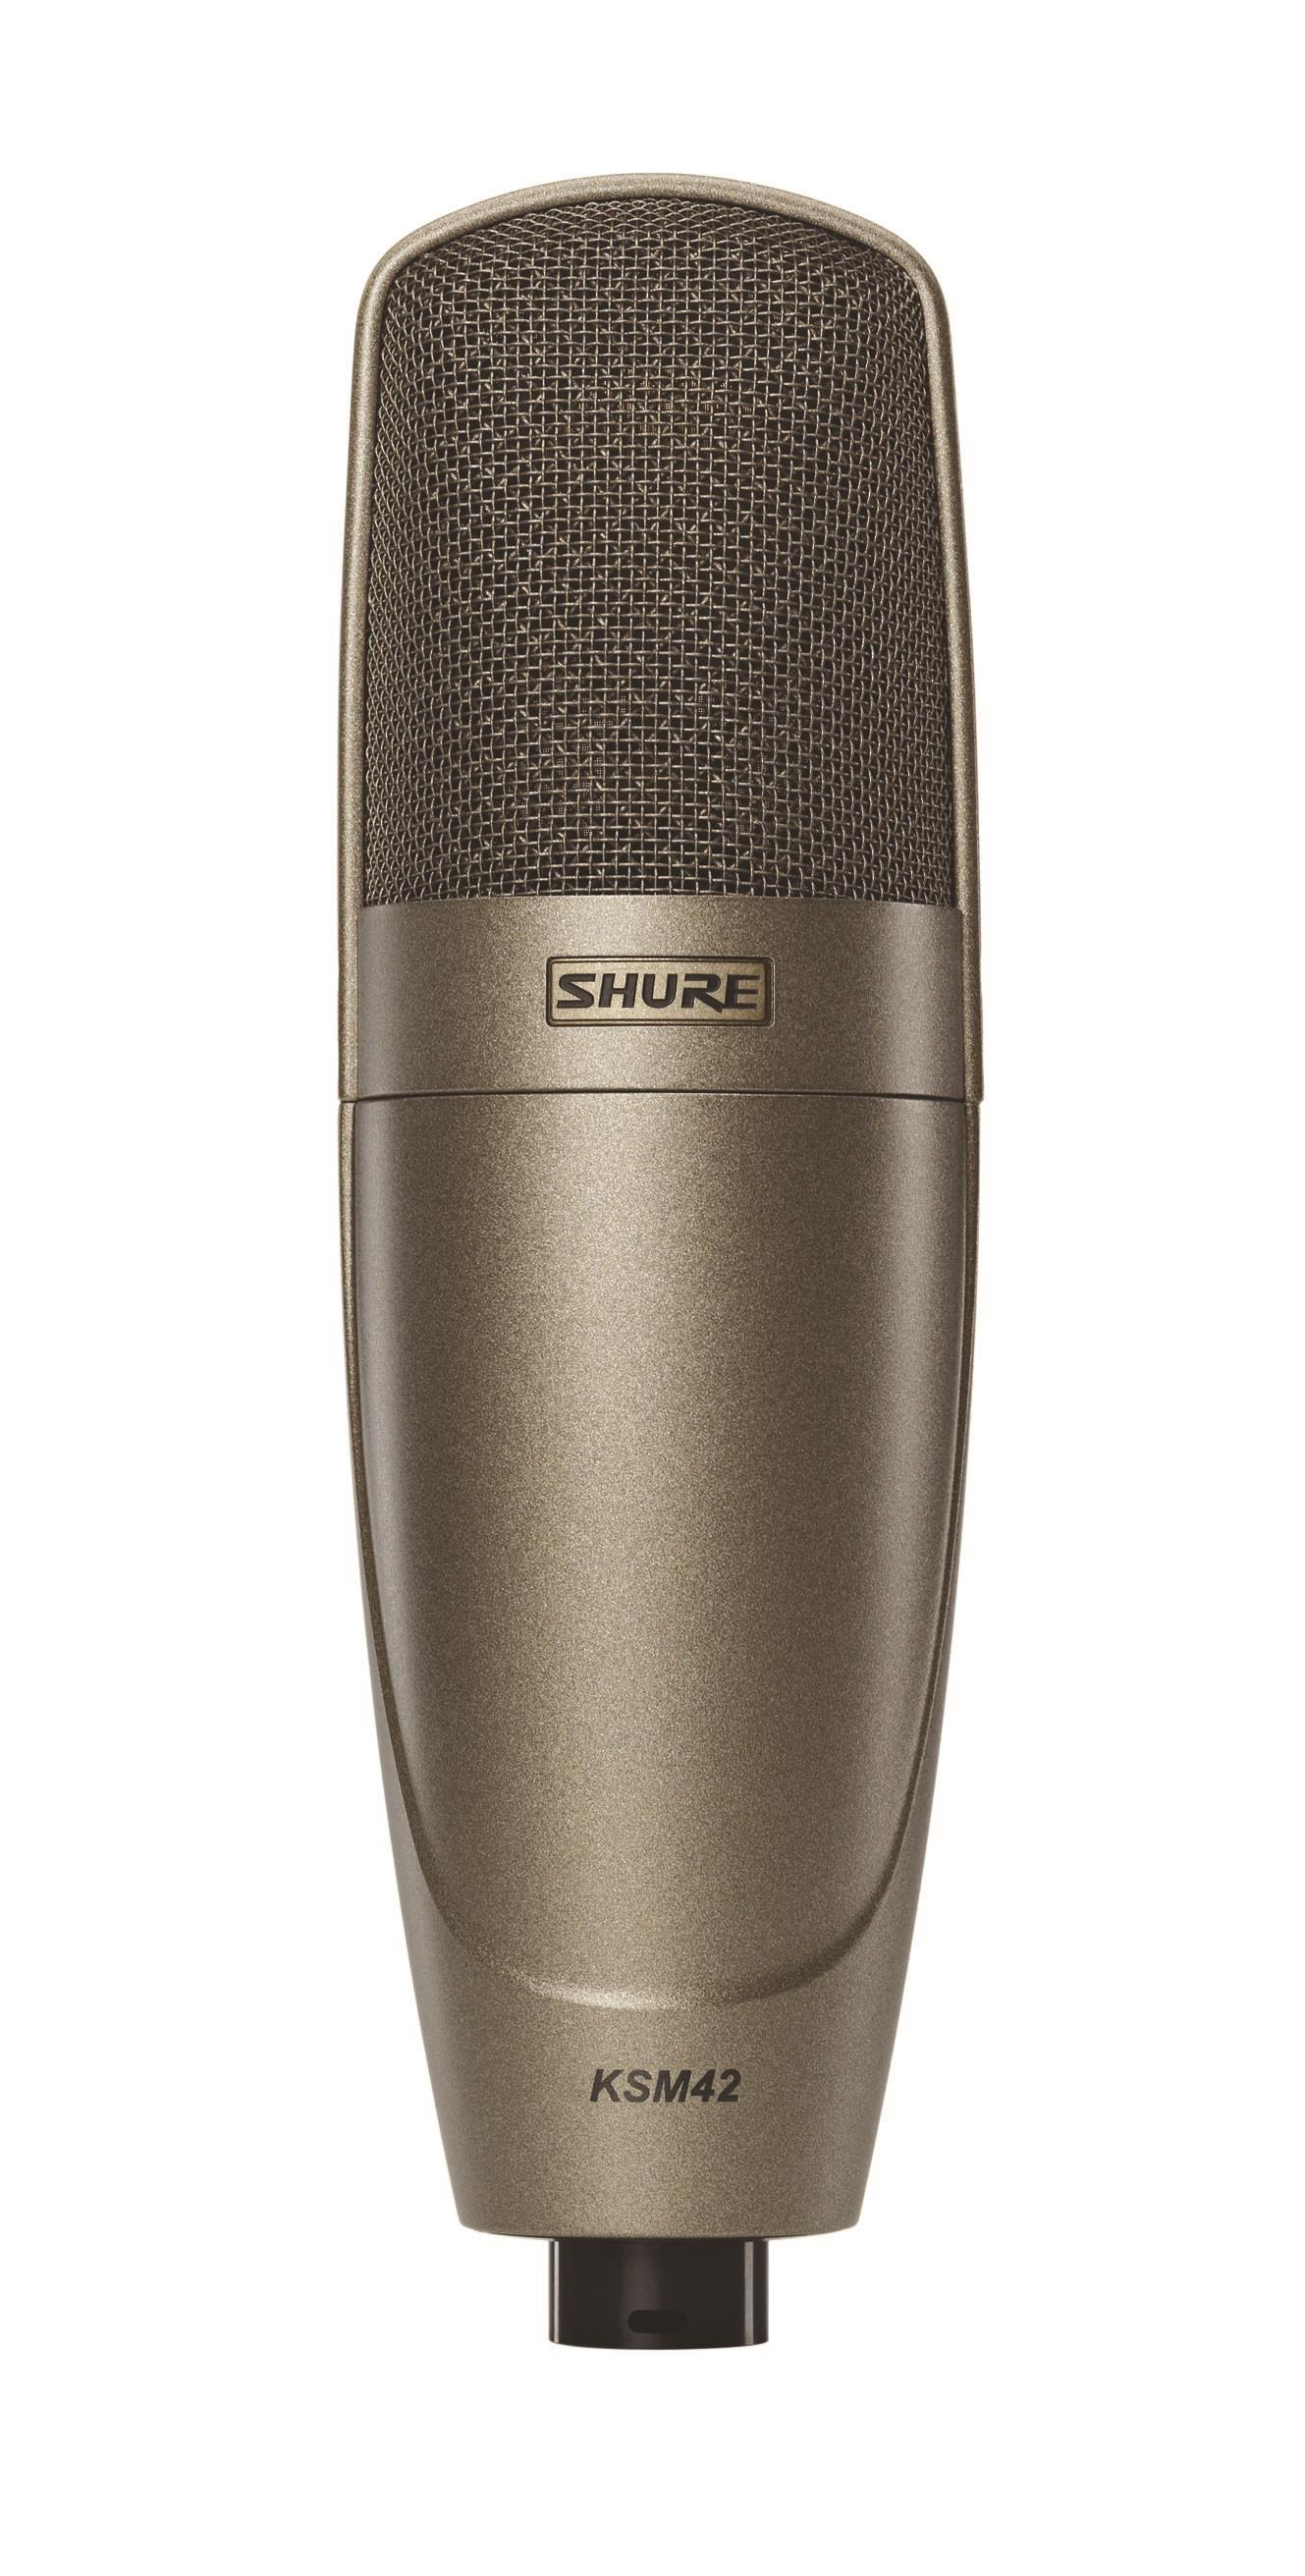 Shure KSM42 Vocal Microphone